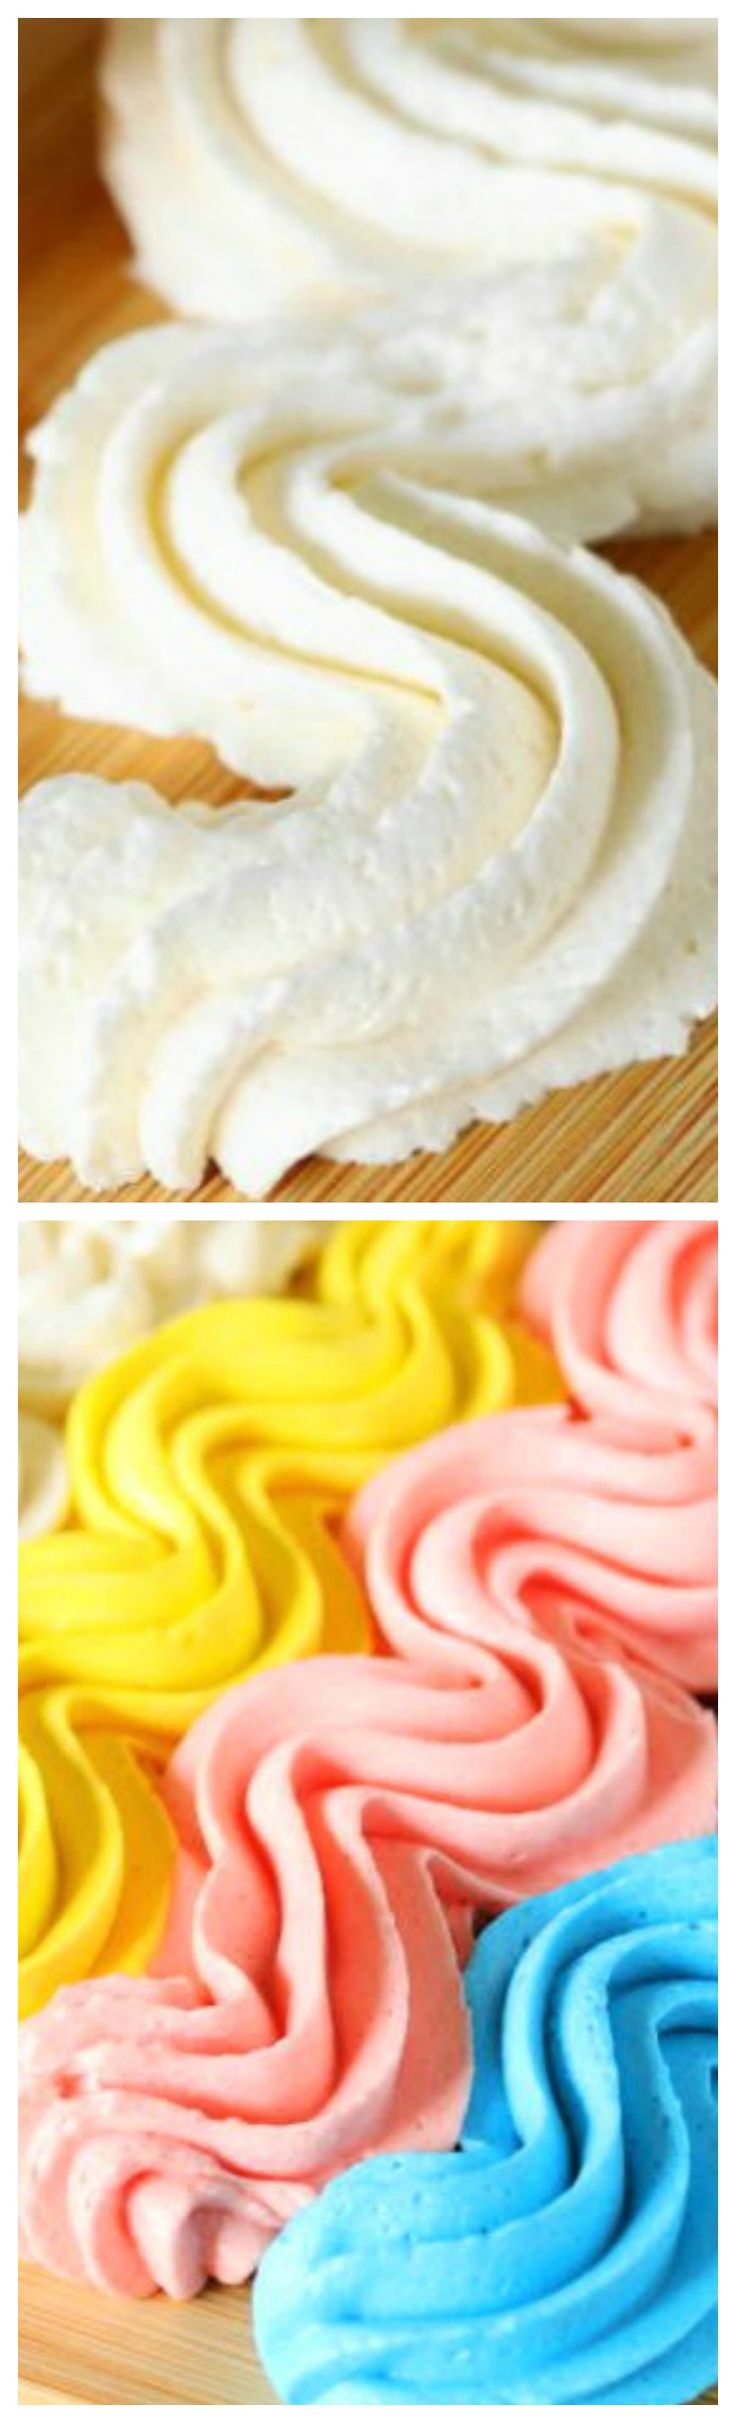 Homemade Vanilla Buttercream Frosting ~ Fluffy, creamy, sweet-but-not-too-sweet, and loaded with great vanilla flavor!